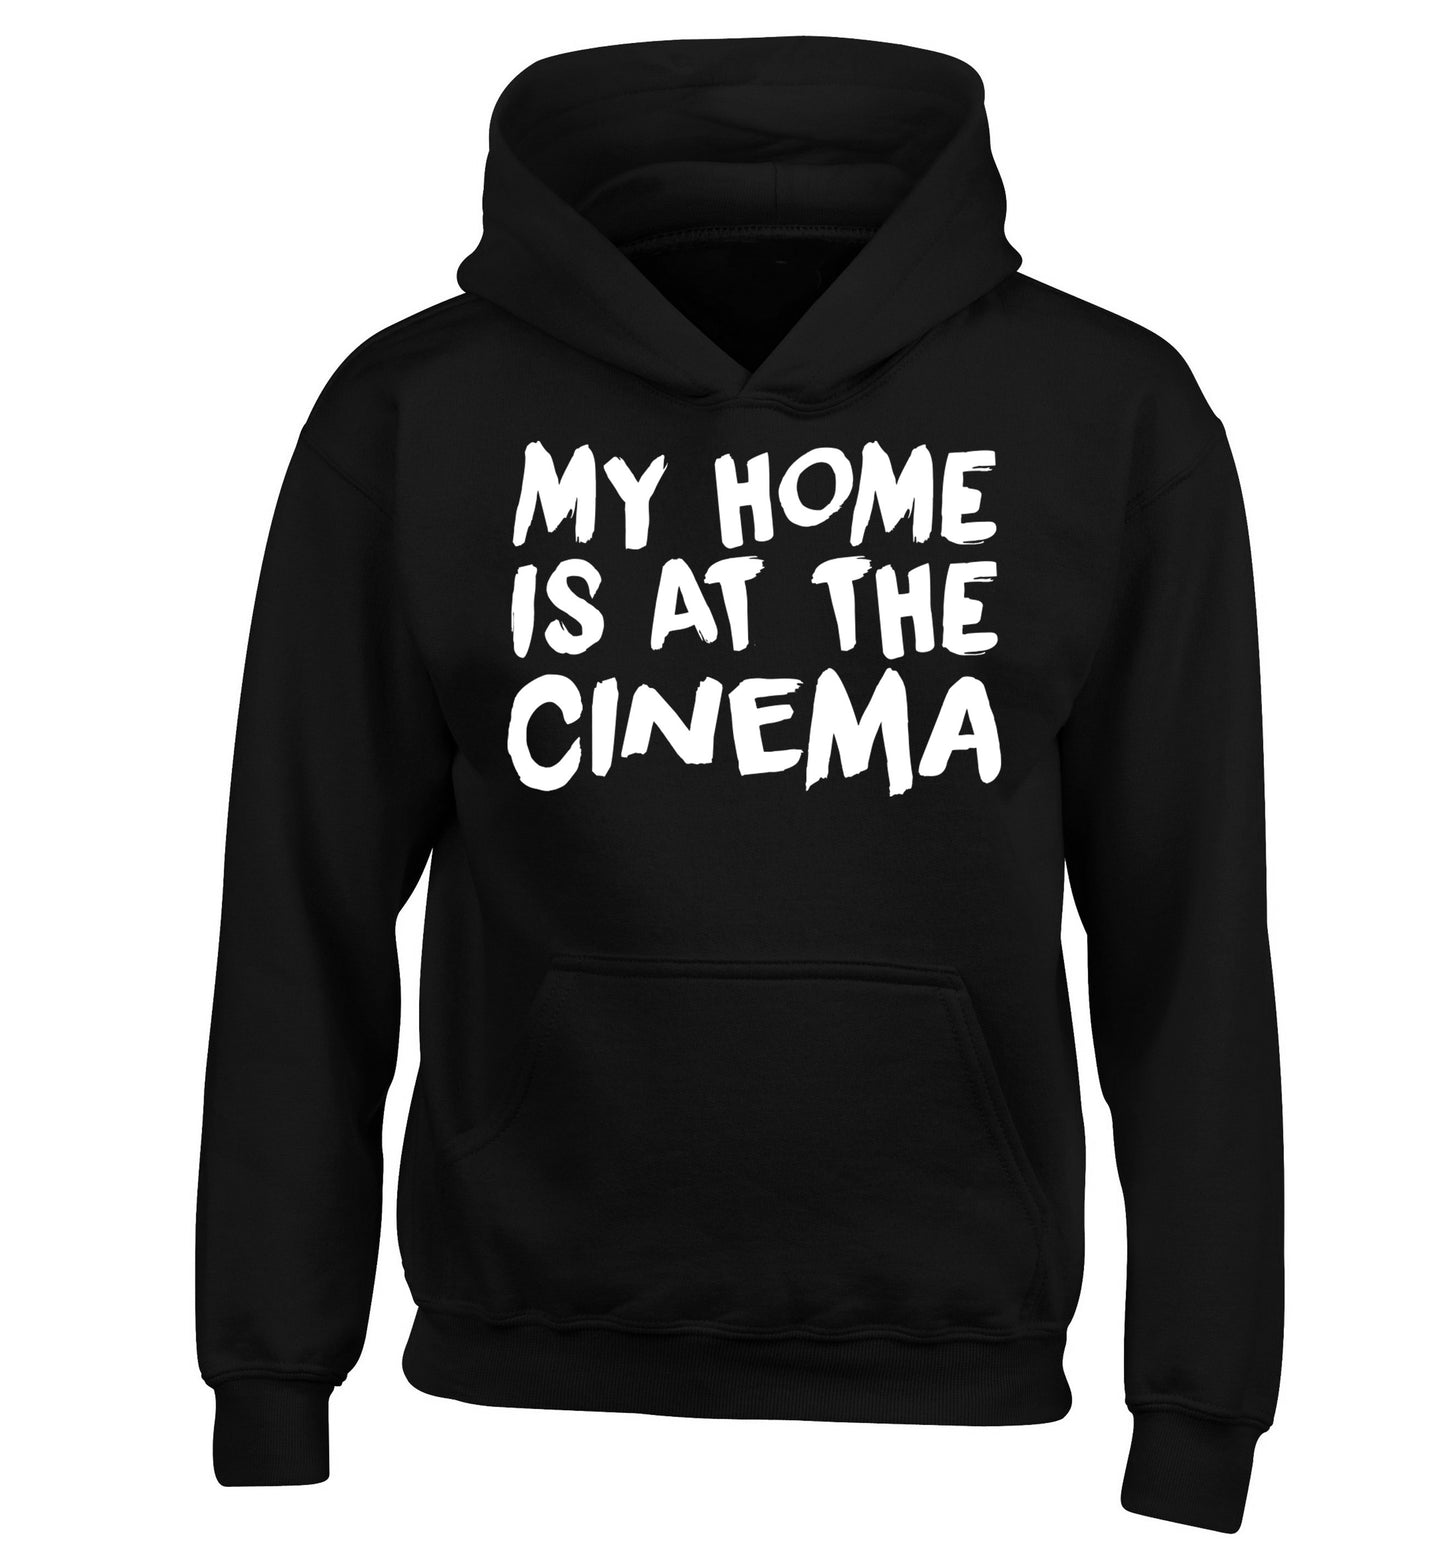 My home is at the cinema children's black hoodie 12-14 Years